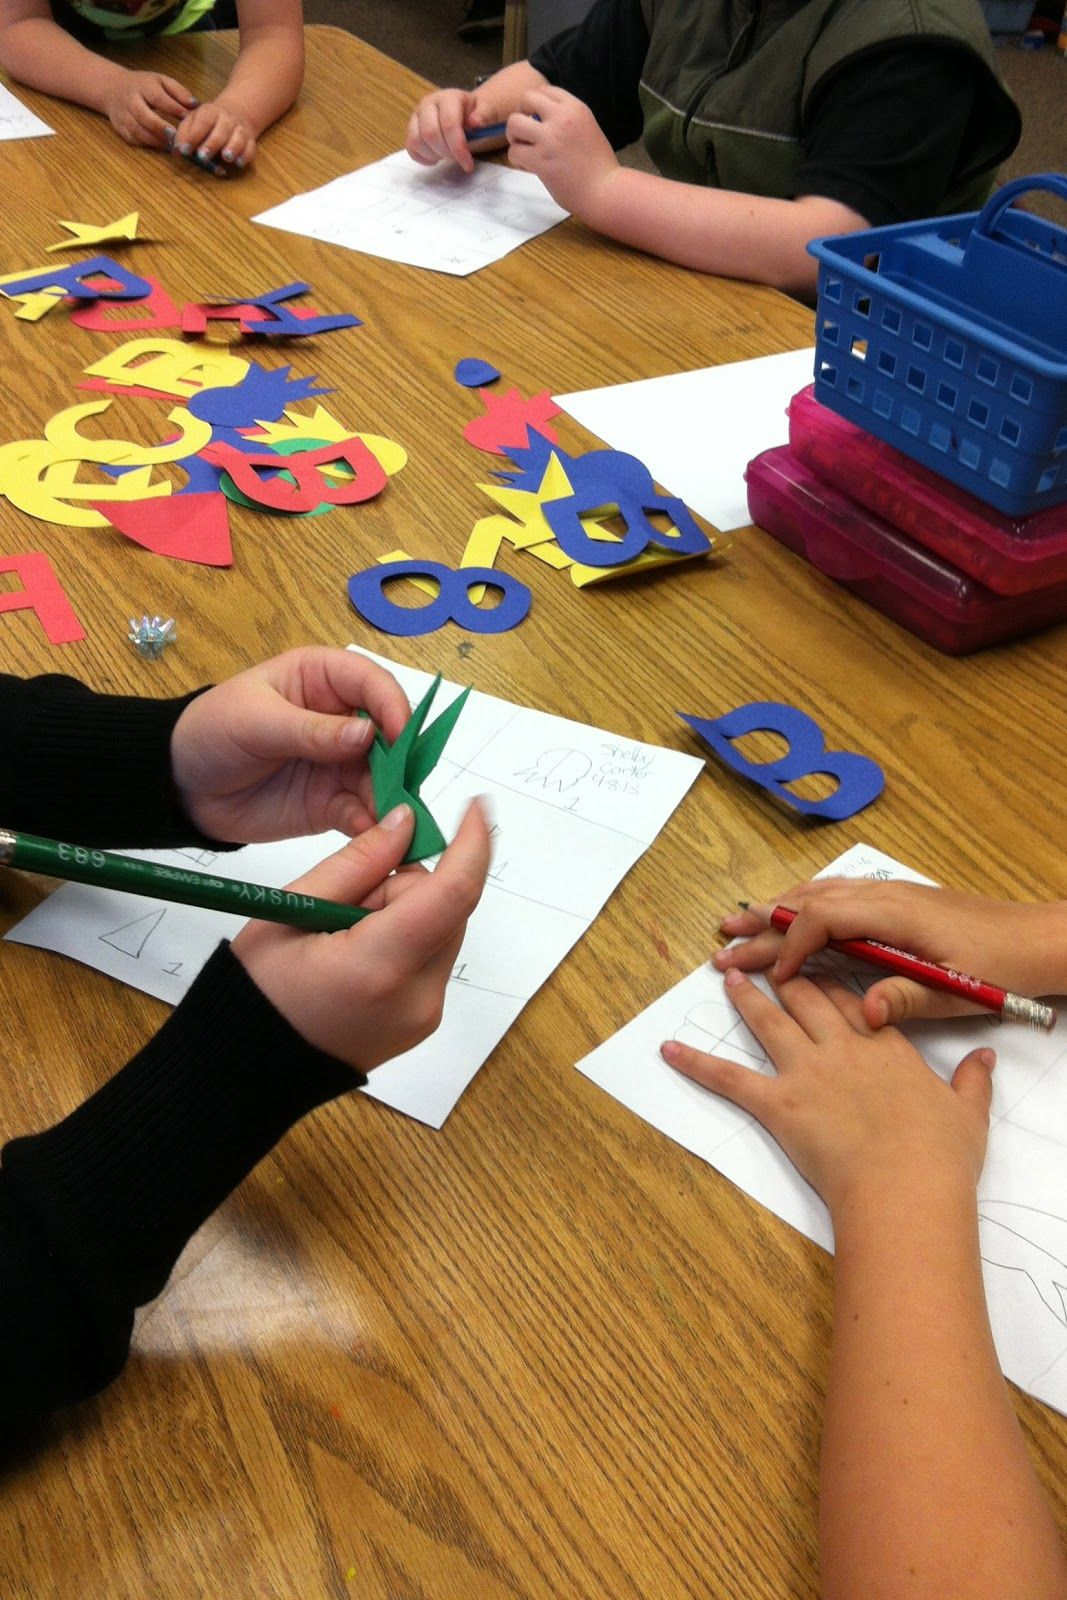 Here S An Easy Fun And Inexpensive Way For Students To Practice Symmetry Just Use The